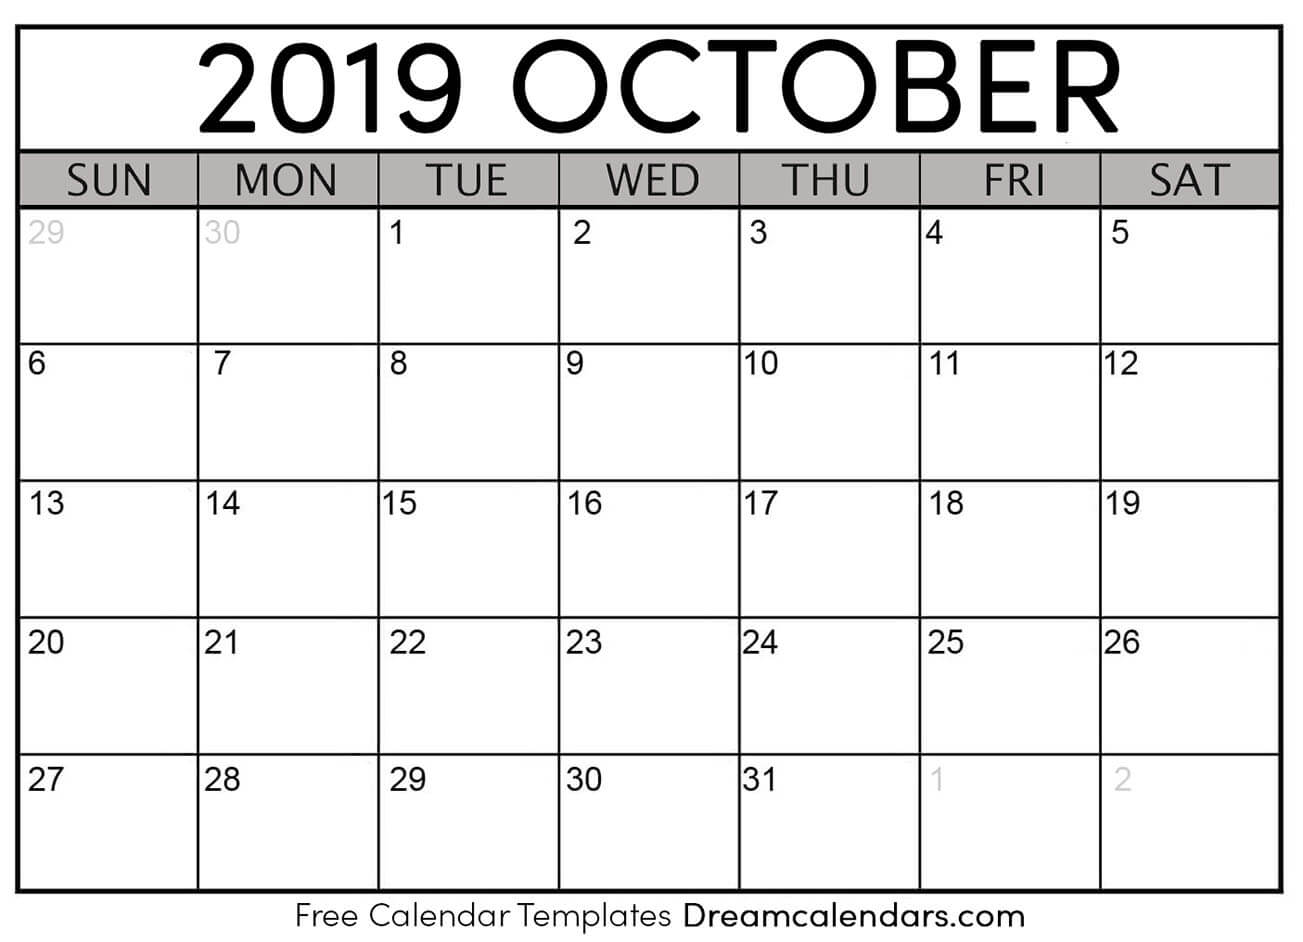 picture regarding October Calendar Printable named Printable Oct 2019 Calendar